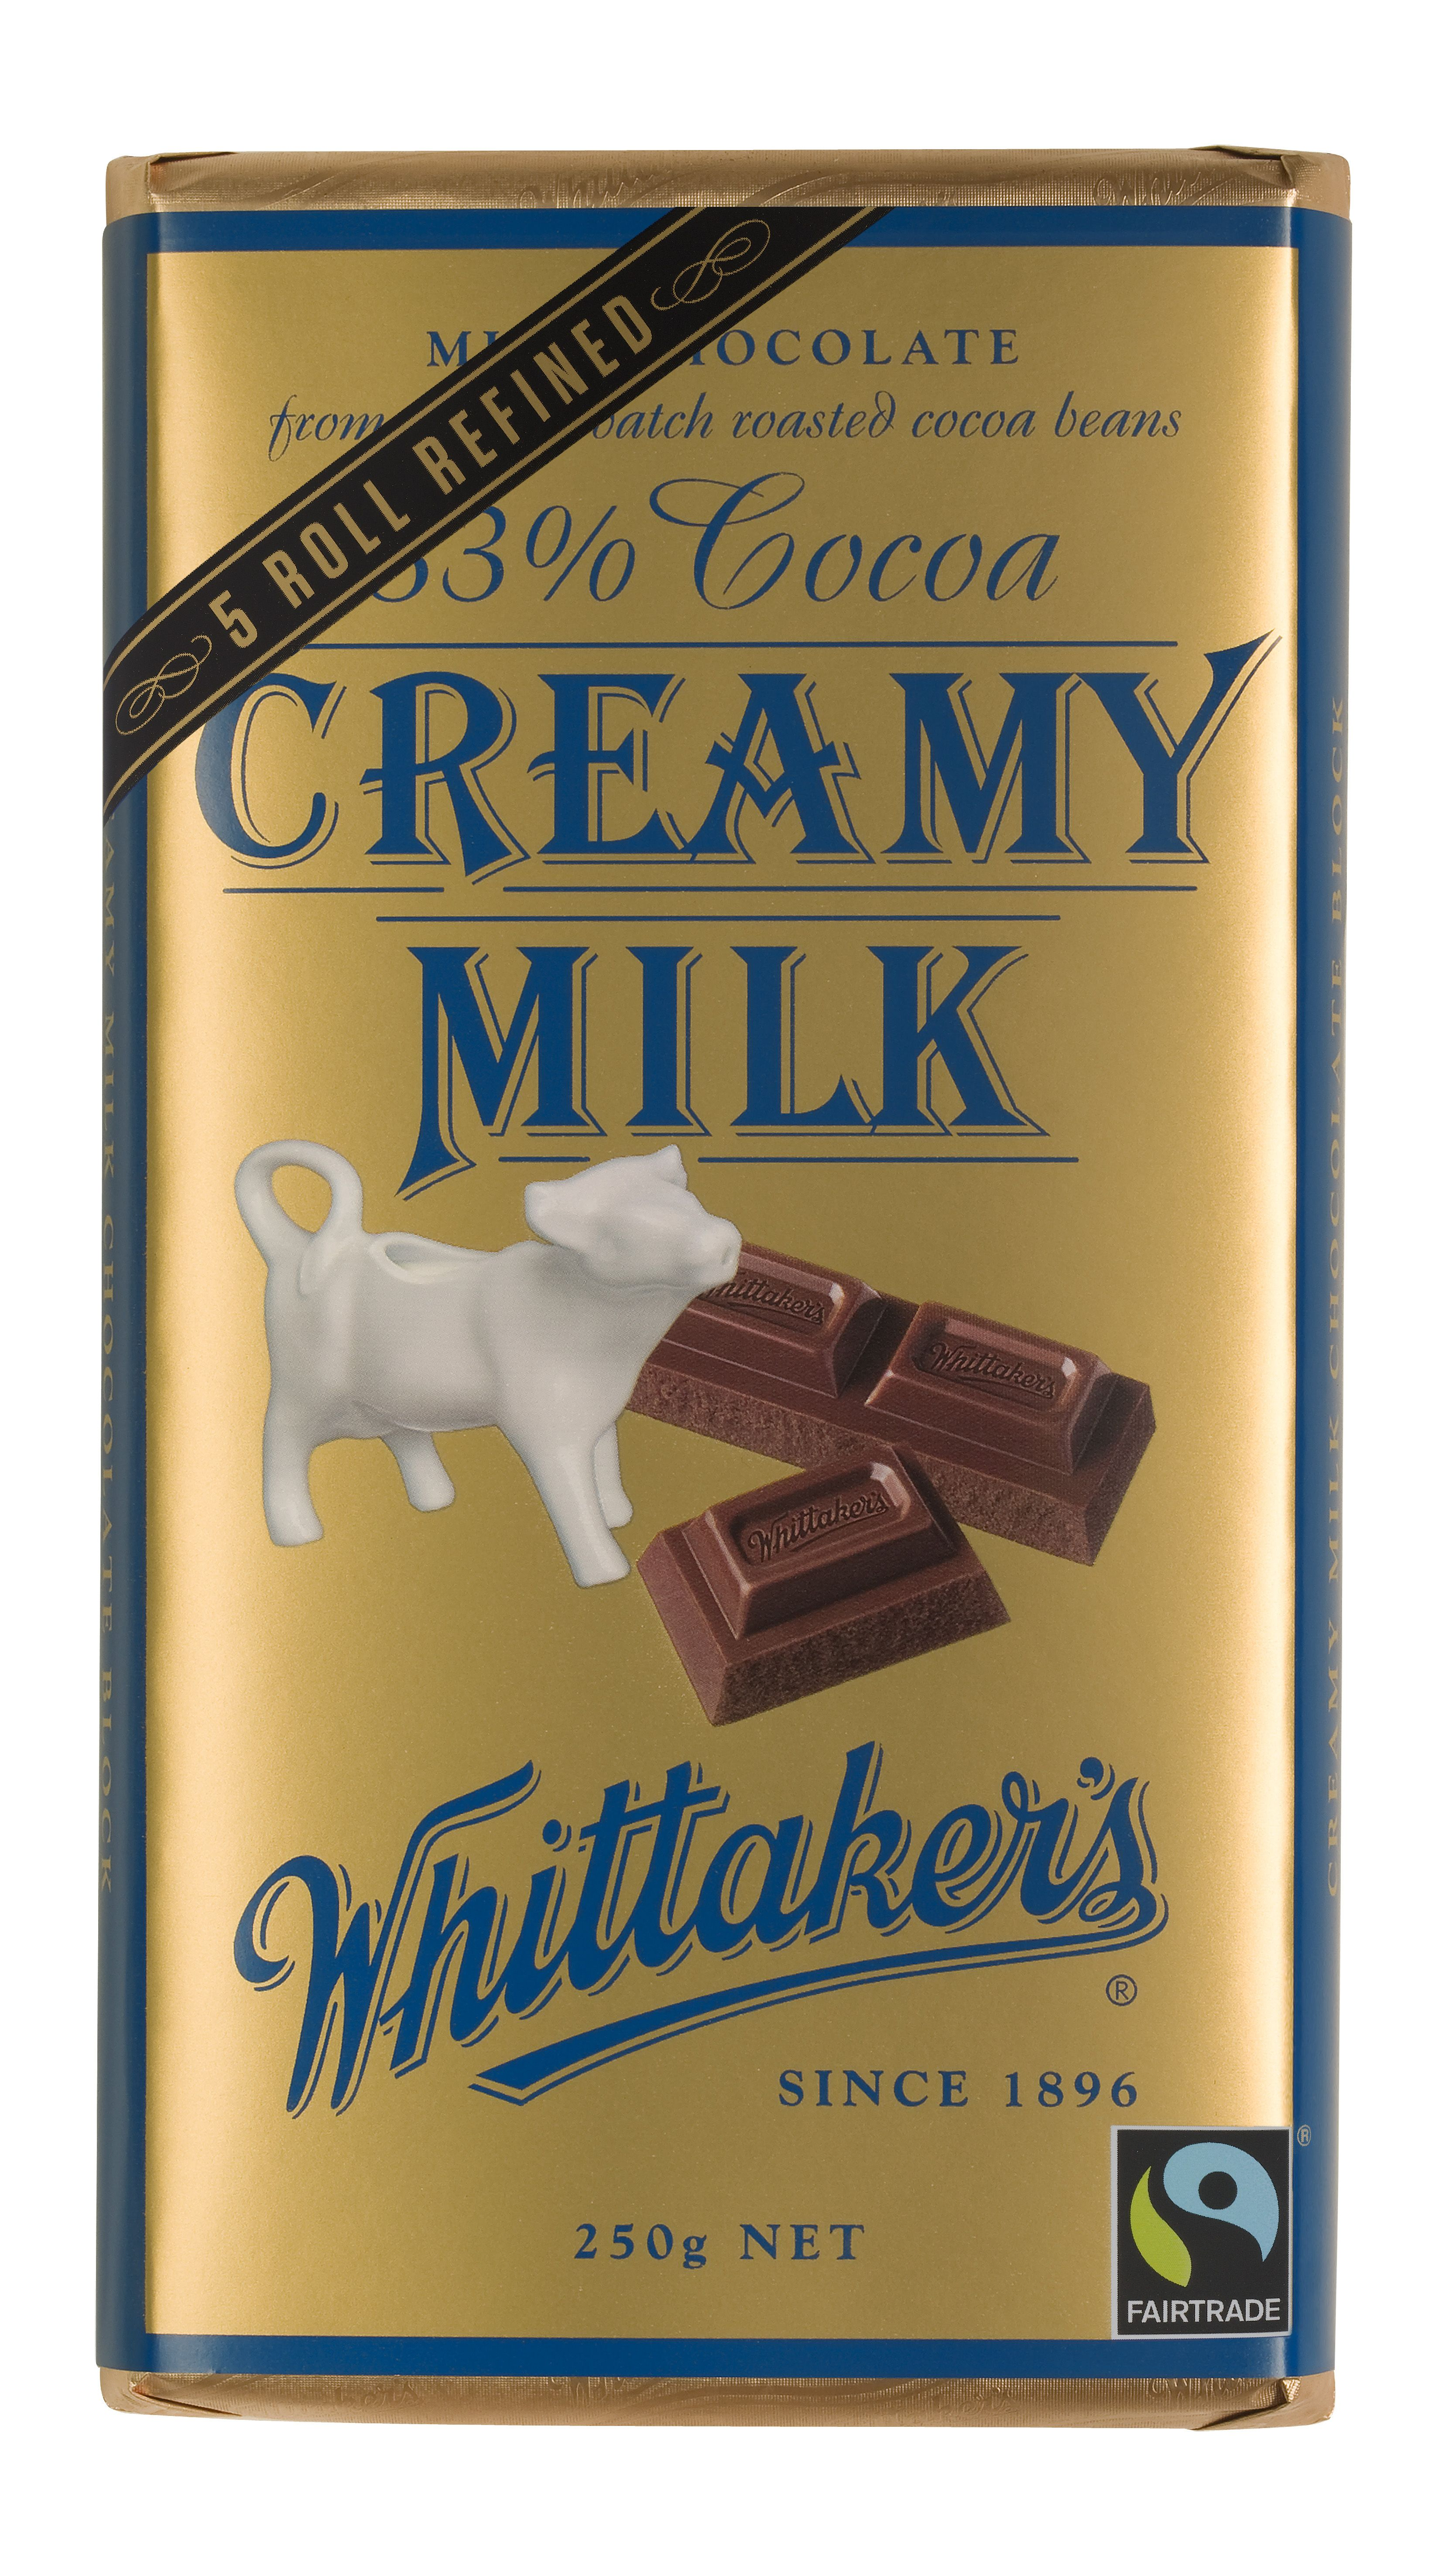 CHOCOLATE - Whittaker's Look for the Fairtrade Certified chocolate ...